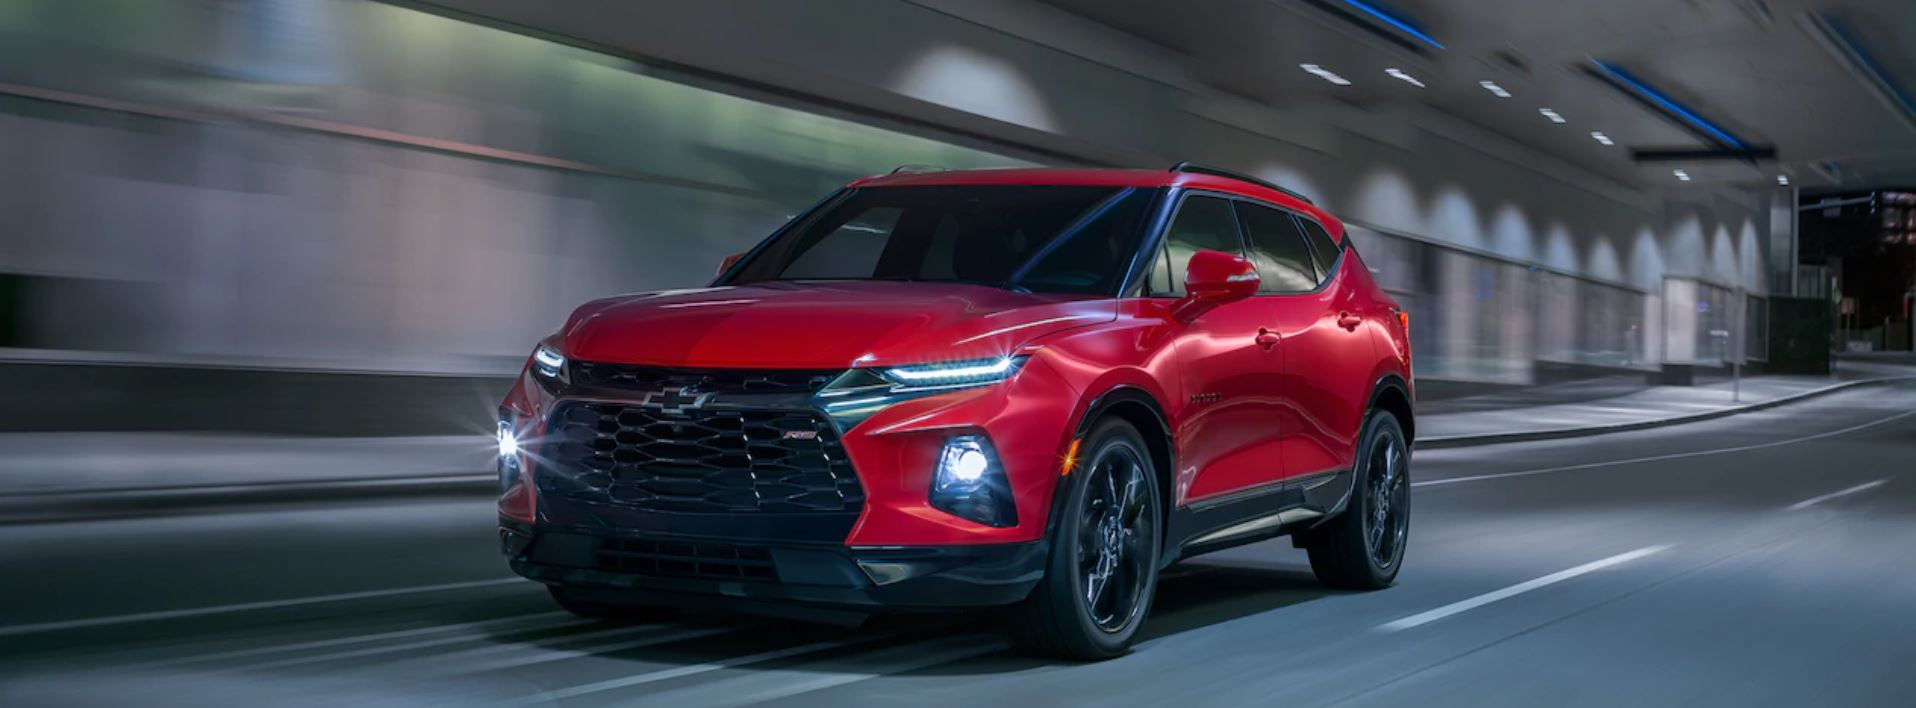 2019 Chevrolet Blazer for Sale near Brookings, SD